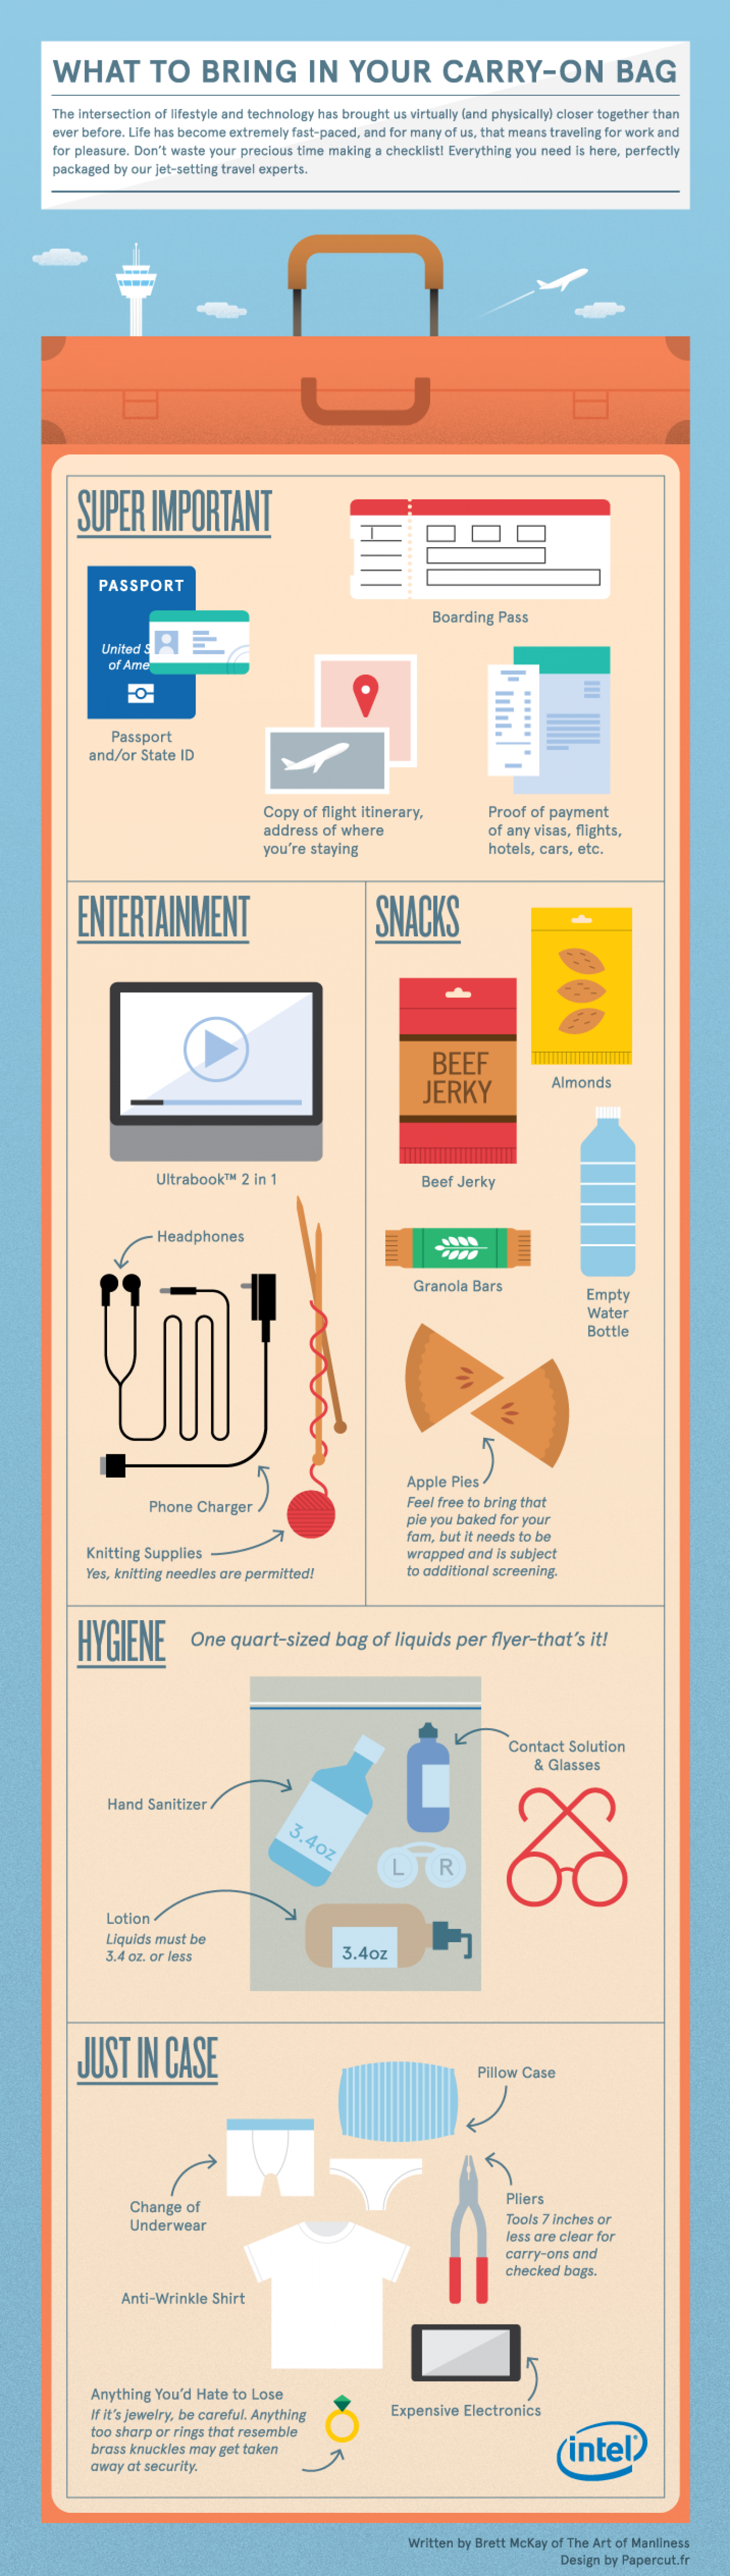 What to Bring in Your Carry On Bag Infographic